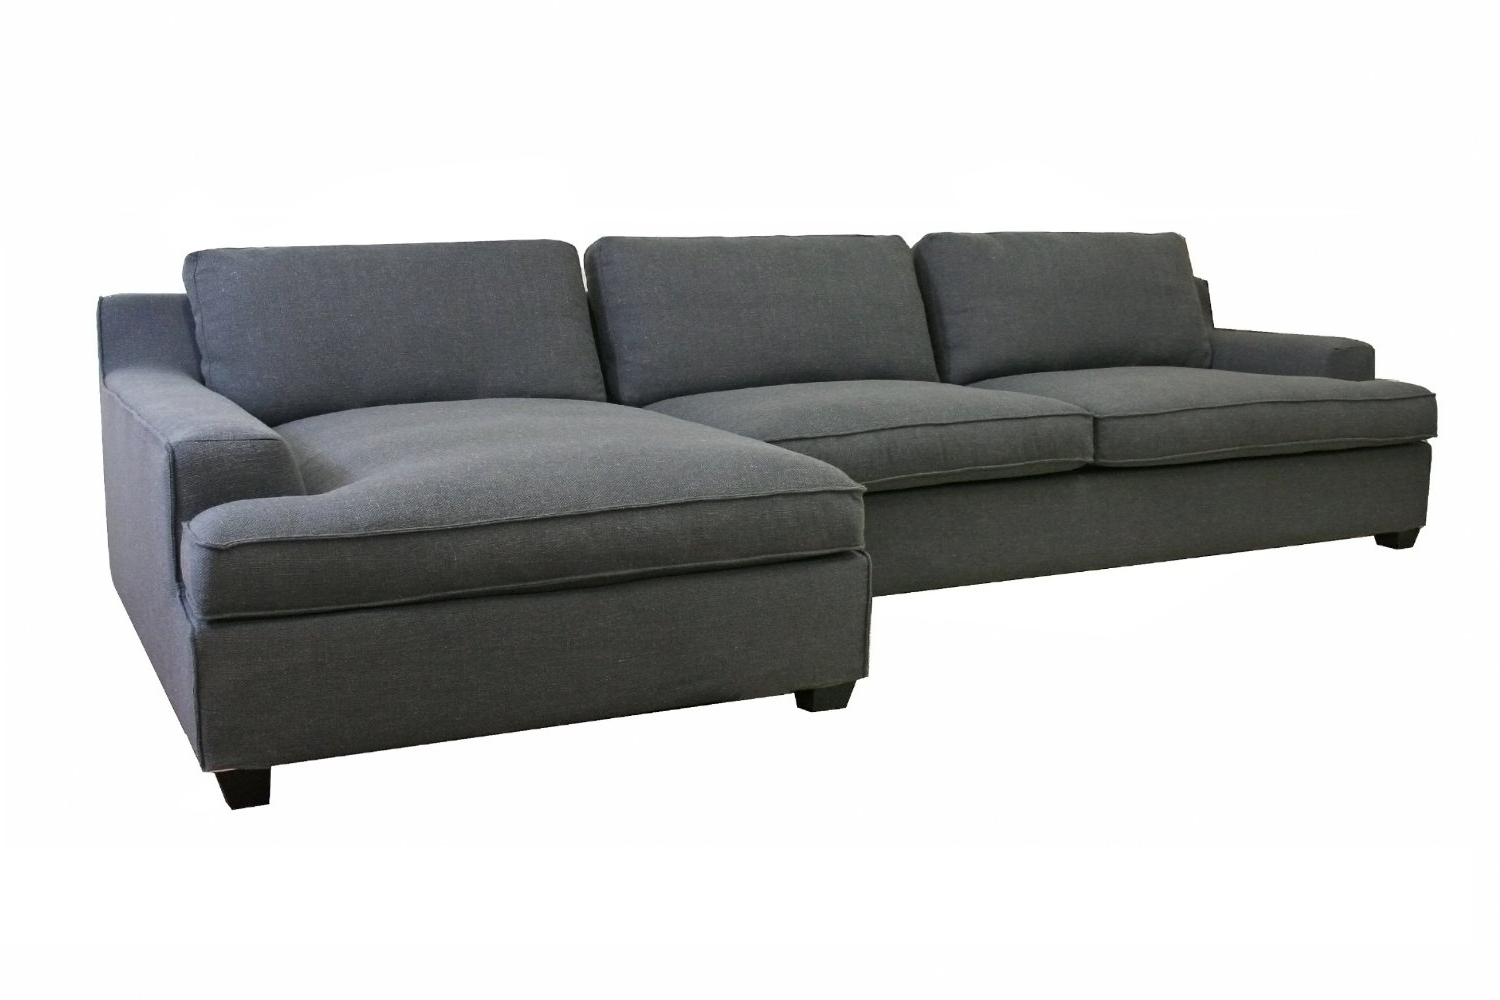 Most Popular Sectional Sofa Design: Sleeper Sofa With Chaise Best Ever Intended For Sleeper Sectional Sofas With Chaise (View 6 of 15)